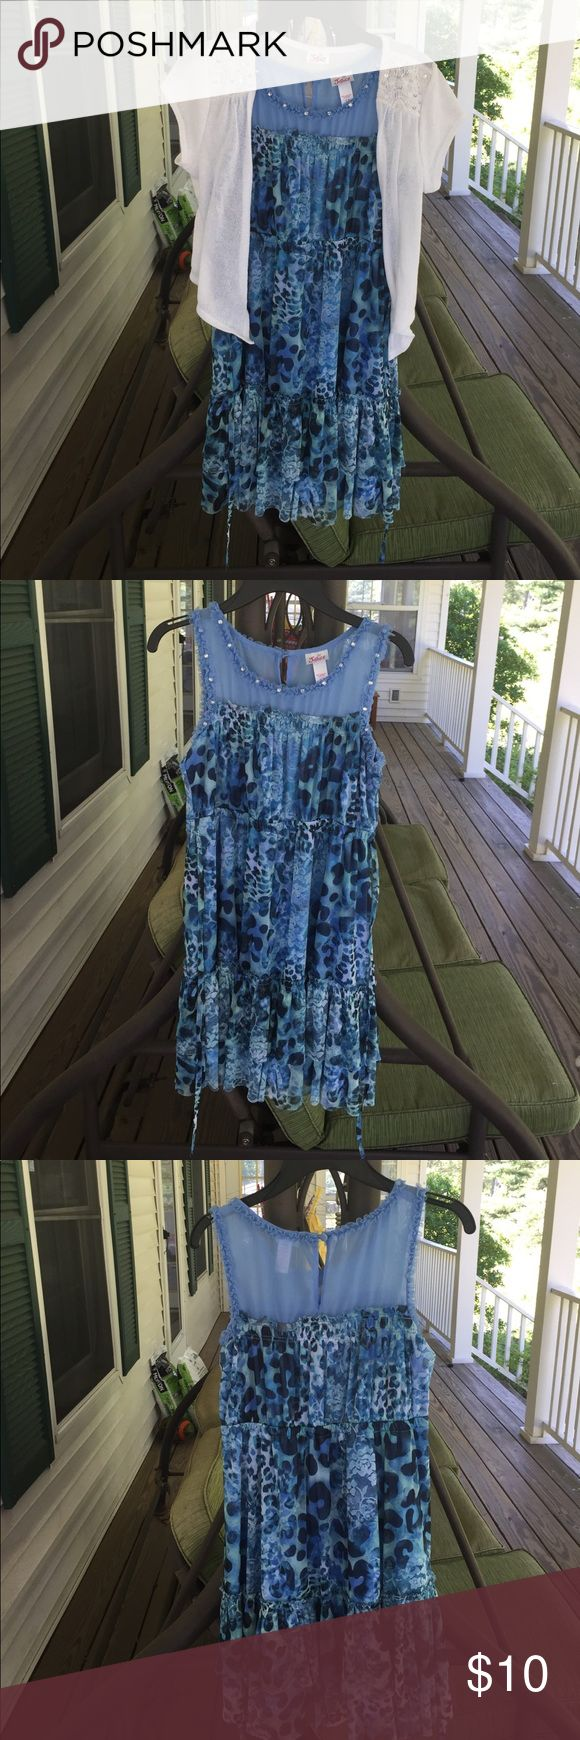 Beautiful blue dress with a white matching sweater Justice dress, EUC. Machine washable and good spring, summer, early fall bc of sweater. Just a hint of sparkle with rhinestones around neck and sequins on top of sweater. Justice Dresses